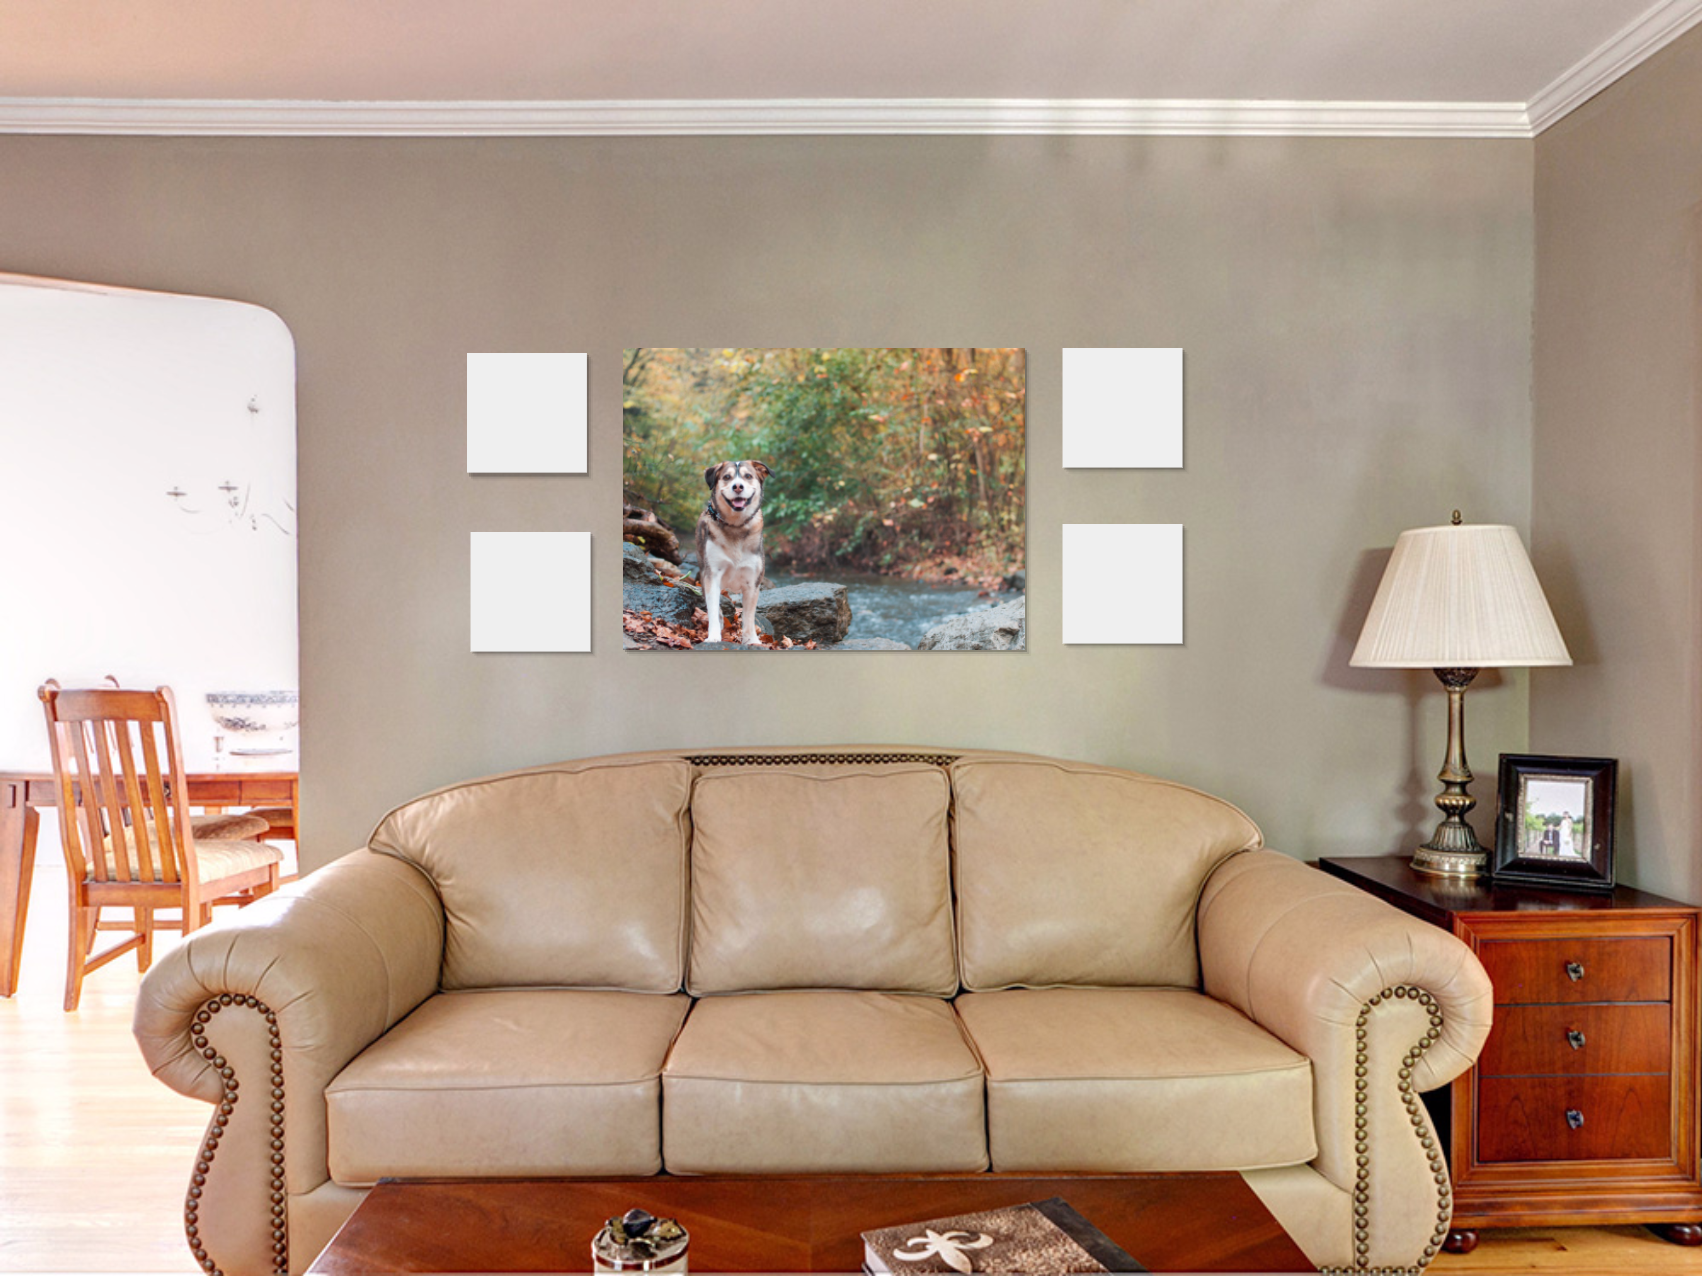 30x40 wall art collection in living room